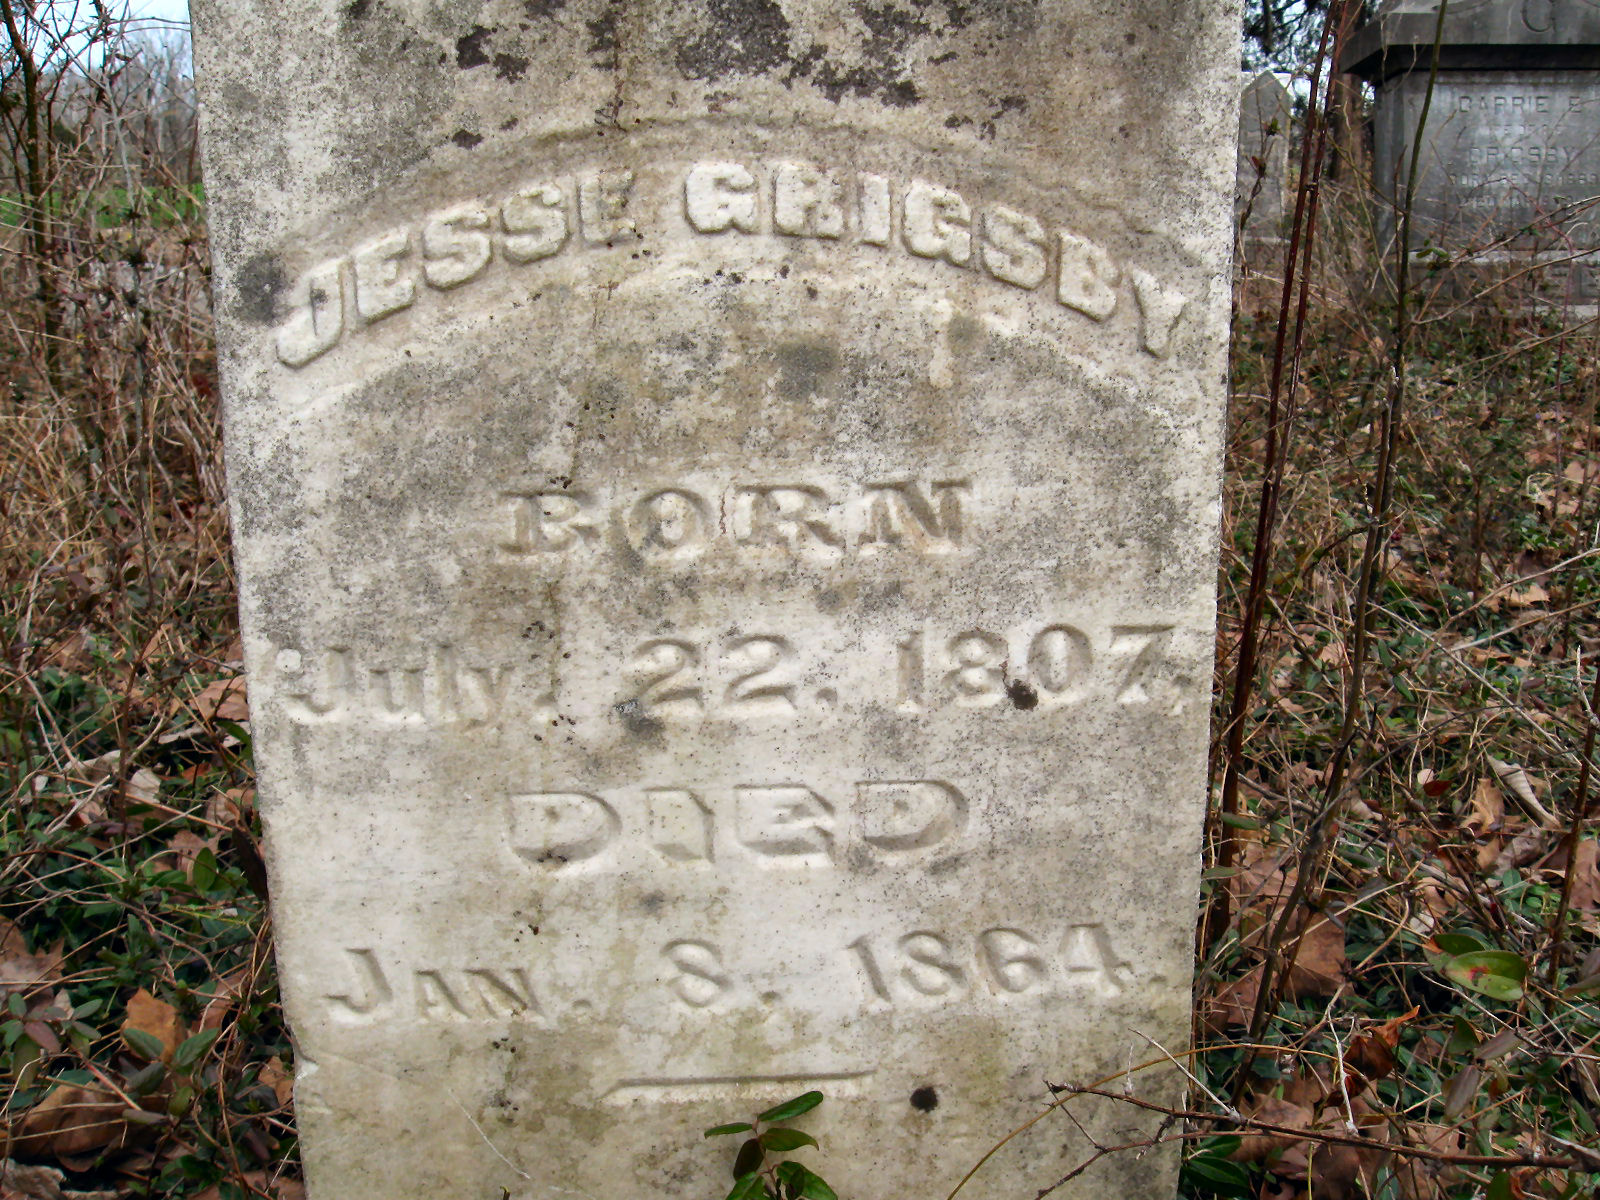 Jesse Grigsby